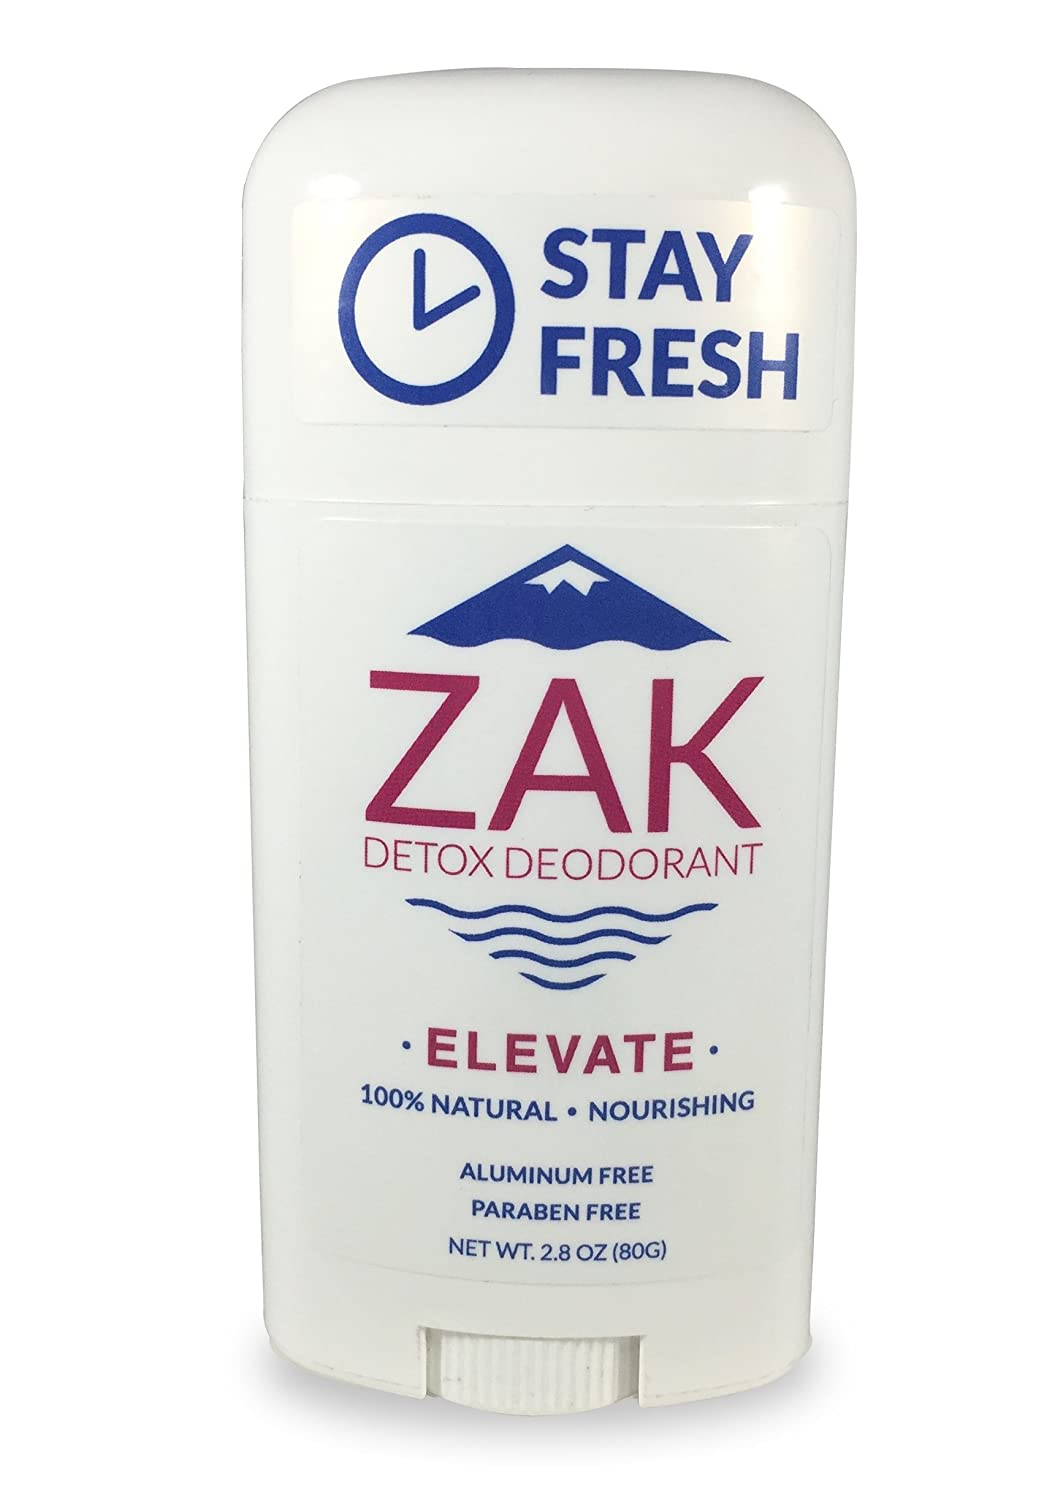 Natural Deodorant Unscented Original Zak Body Axe Bodyspray Score 150 Ml Twin Pack Care Aluminum And Paraben Free No Propylene Glycol Organic Ingredients Beauty